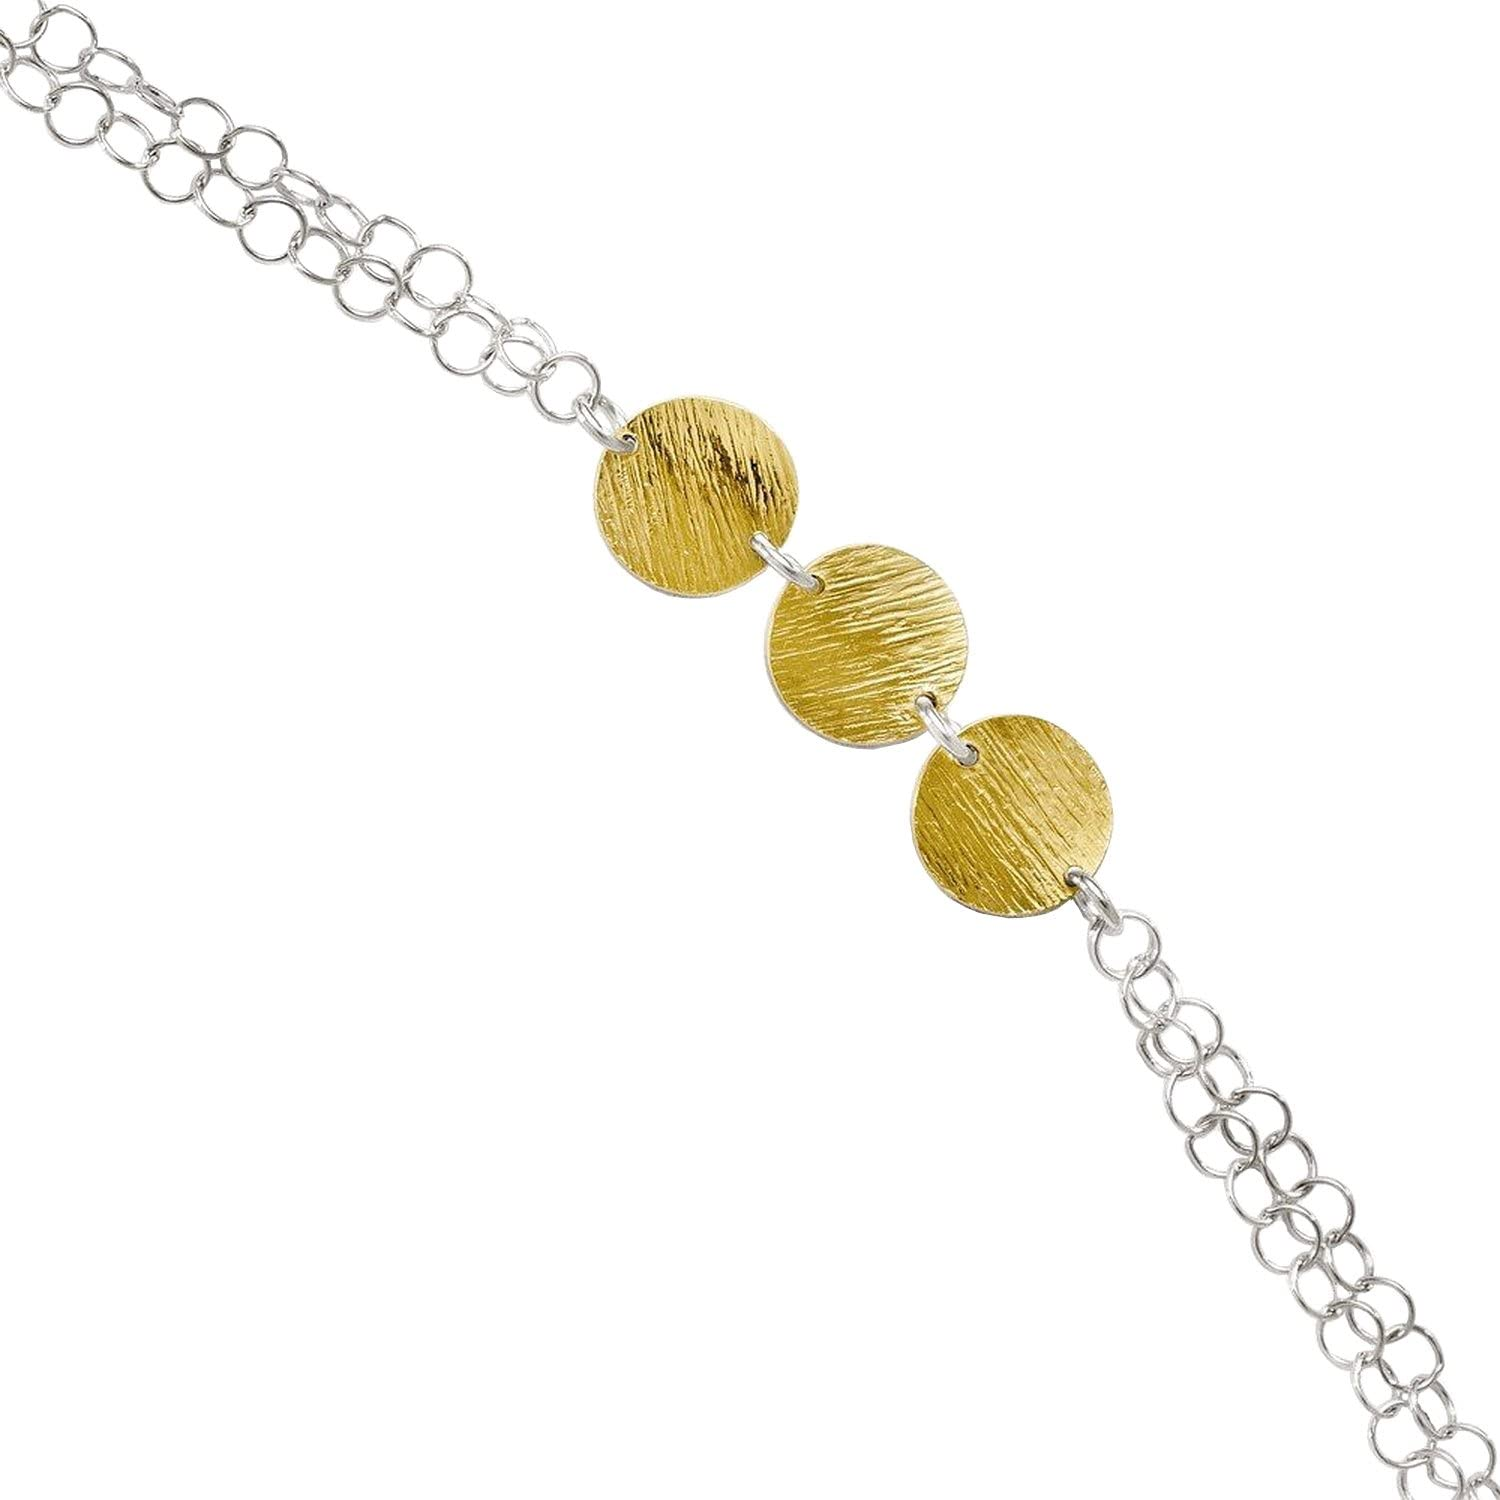 9-10 Inch Leslies Sterling Silver Gold-tone 18k Flash Plated Anklet Adj